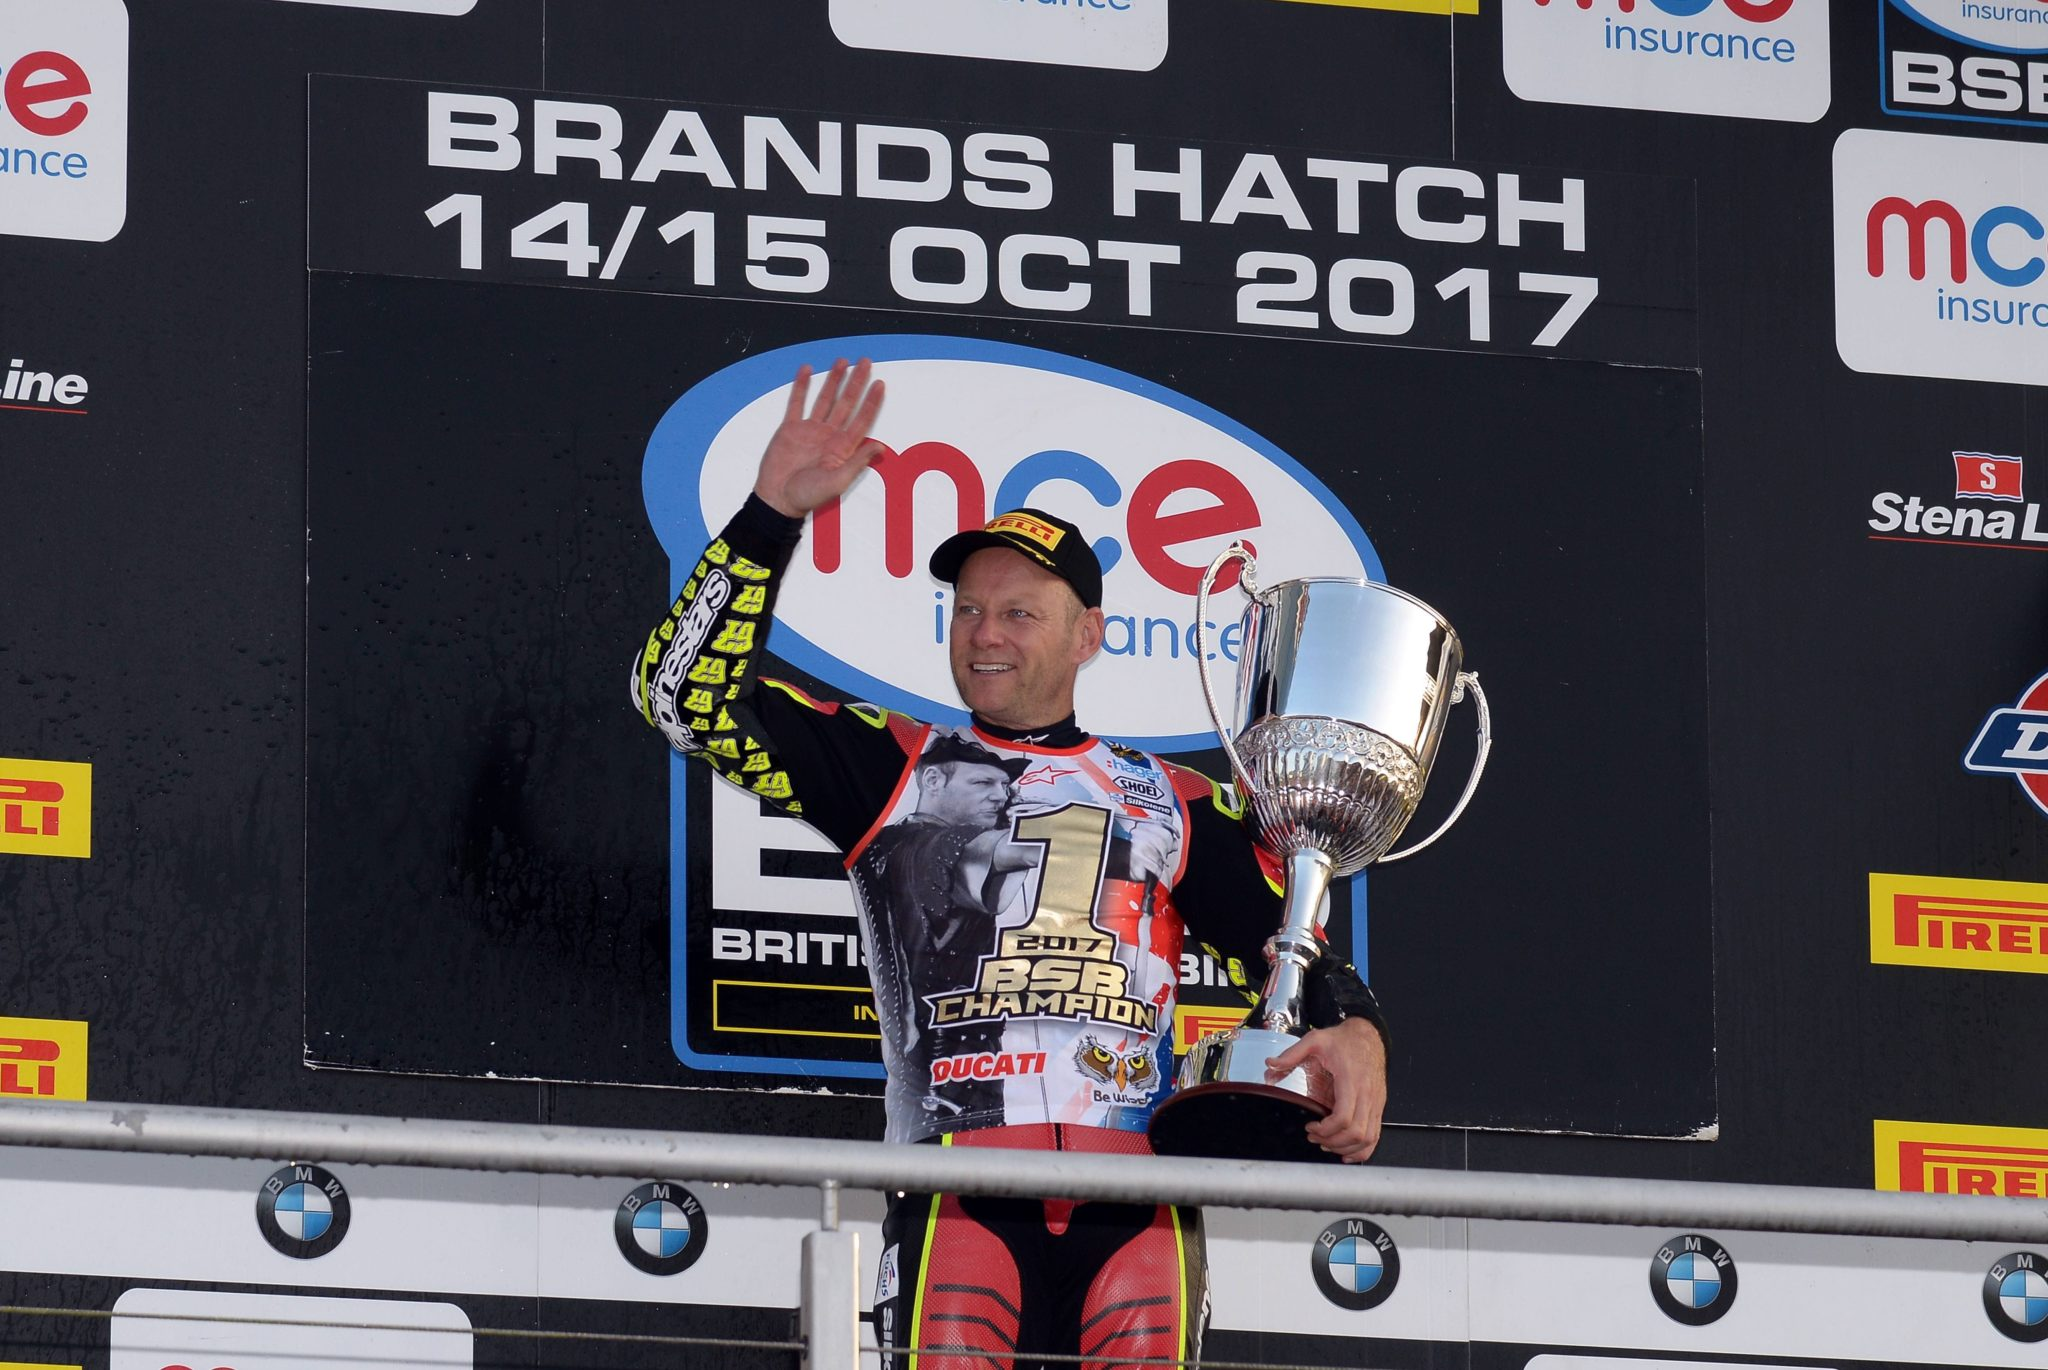 Shane Byrne was last years winner BSB